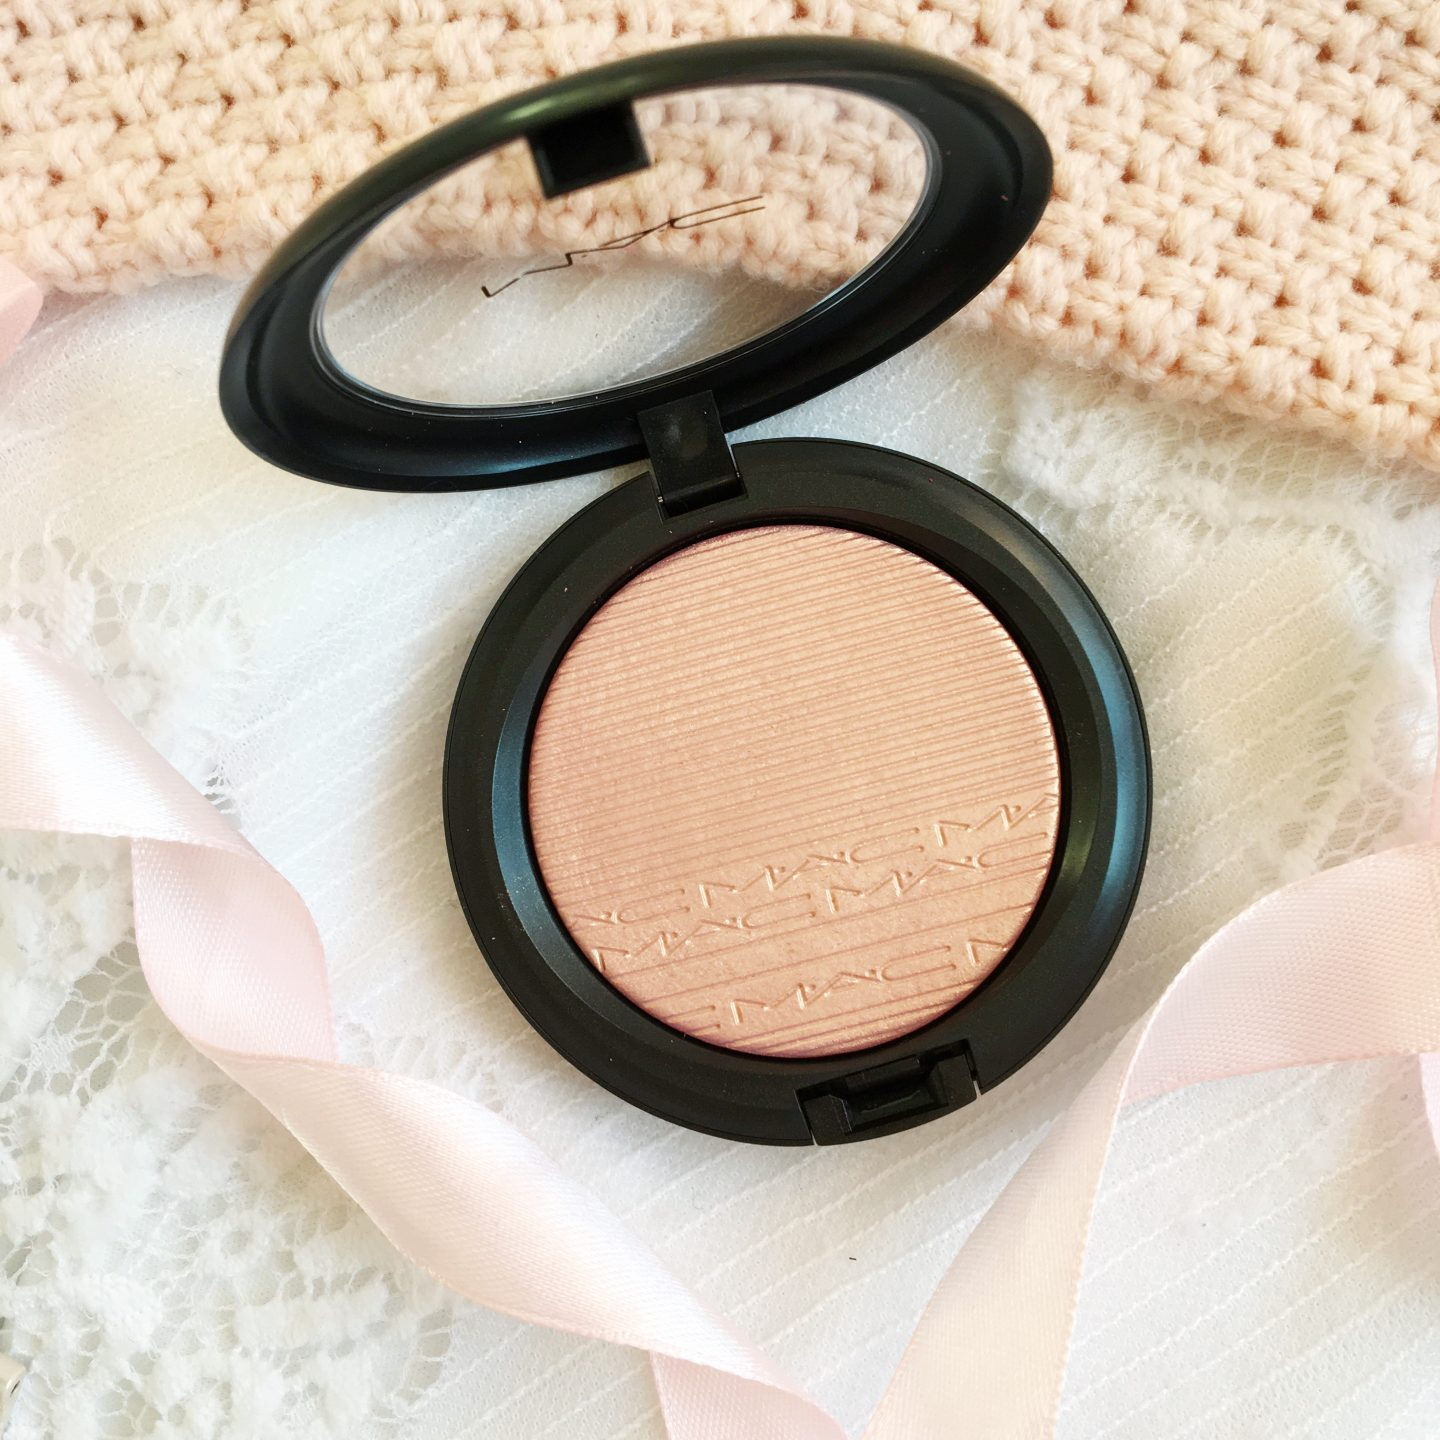 Debenhams Haul | MAC Beaming Blush Highlight